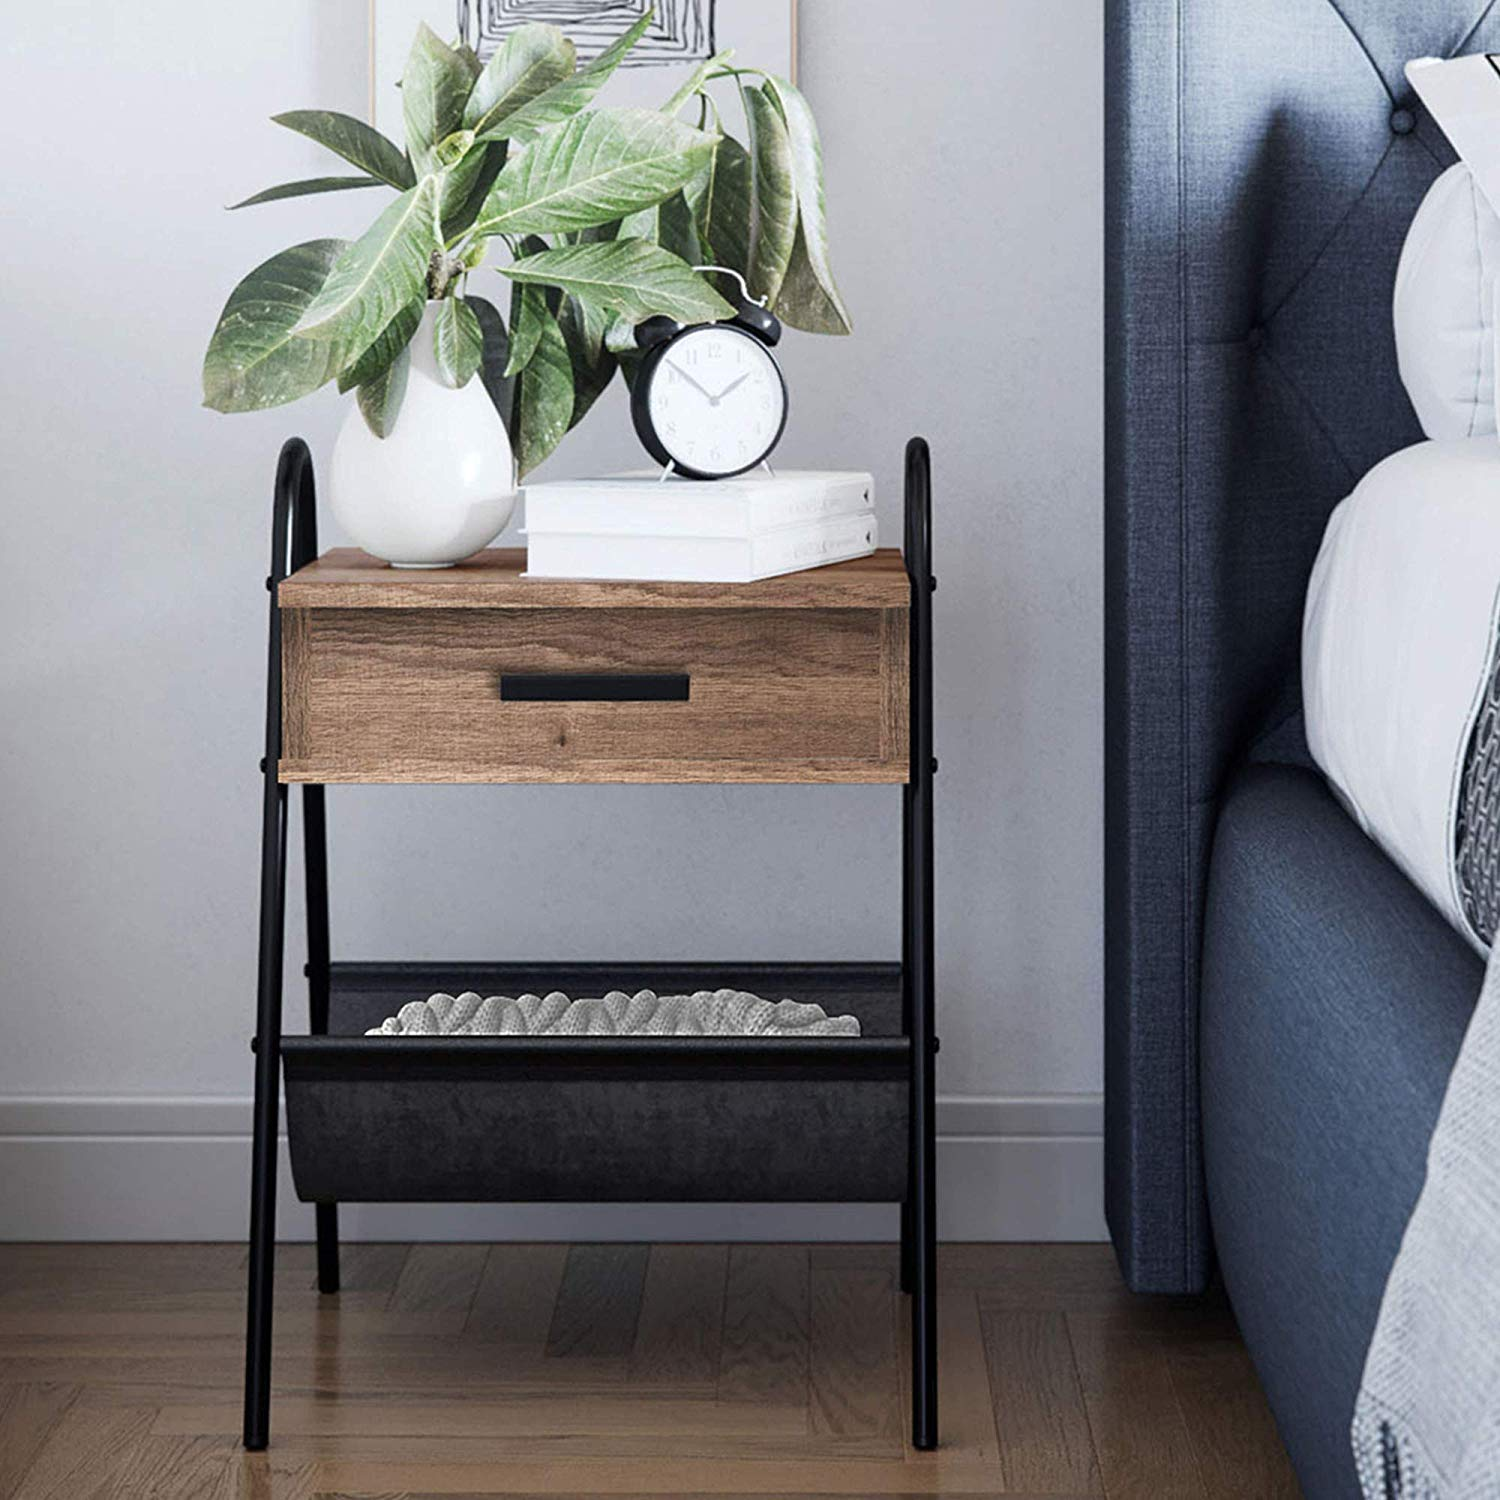 Cheap Stylish Amazon Nightstands Best Amazon Bedside Tables Apartment Therapy